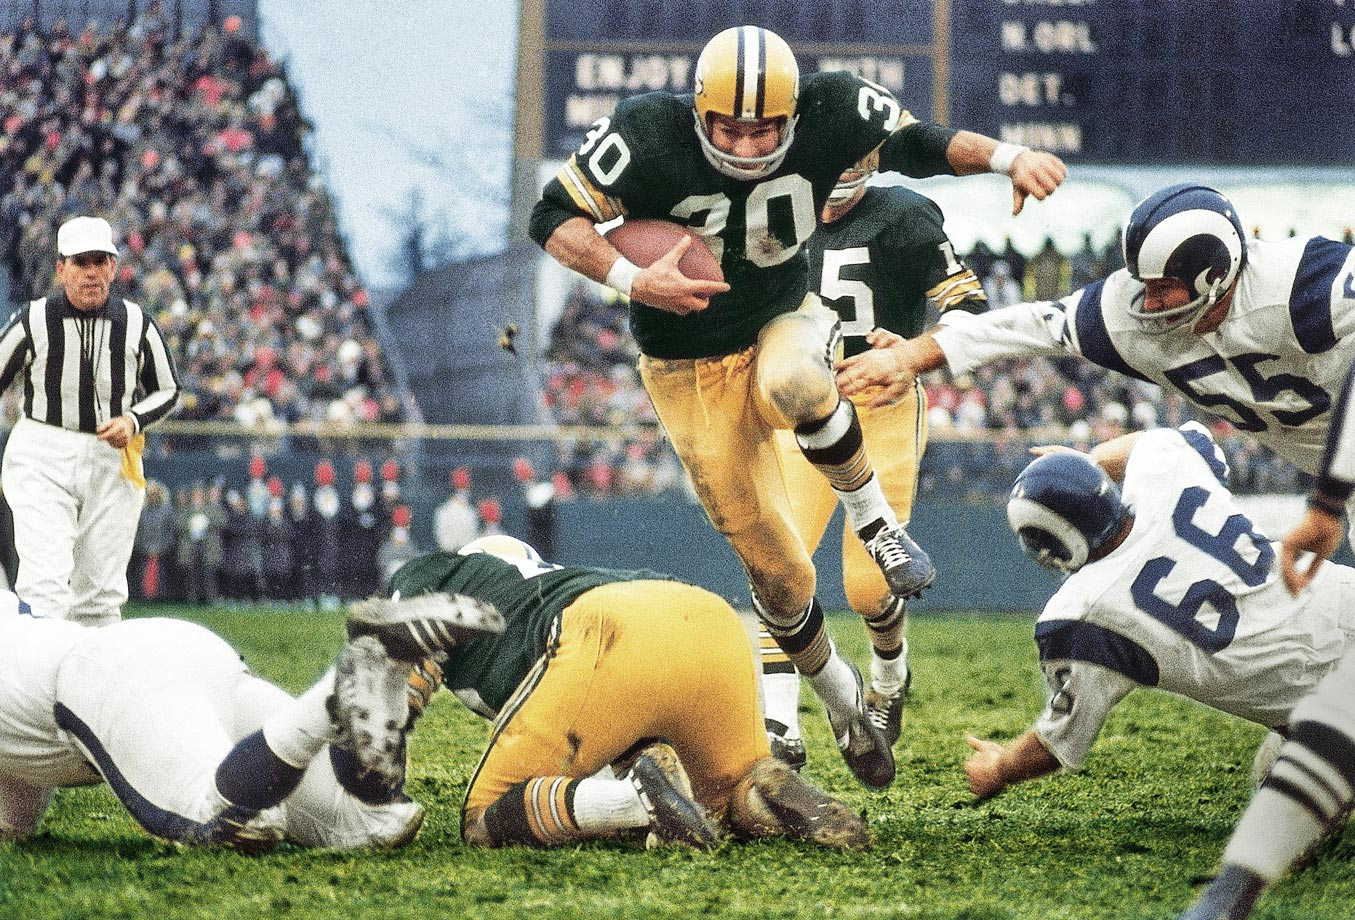 Green Bay Packers running back Chuck Mercein carries the ball against the Los Angeles Rams in December 1967.